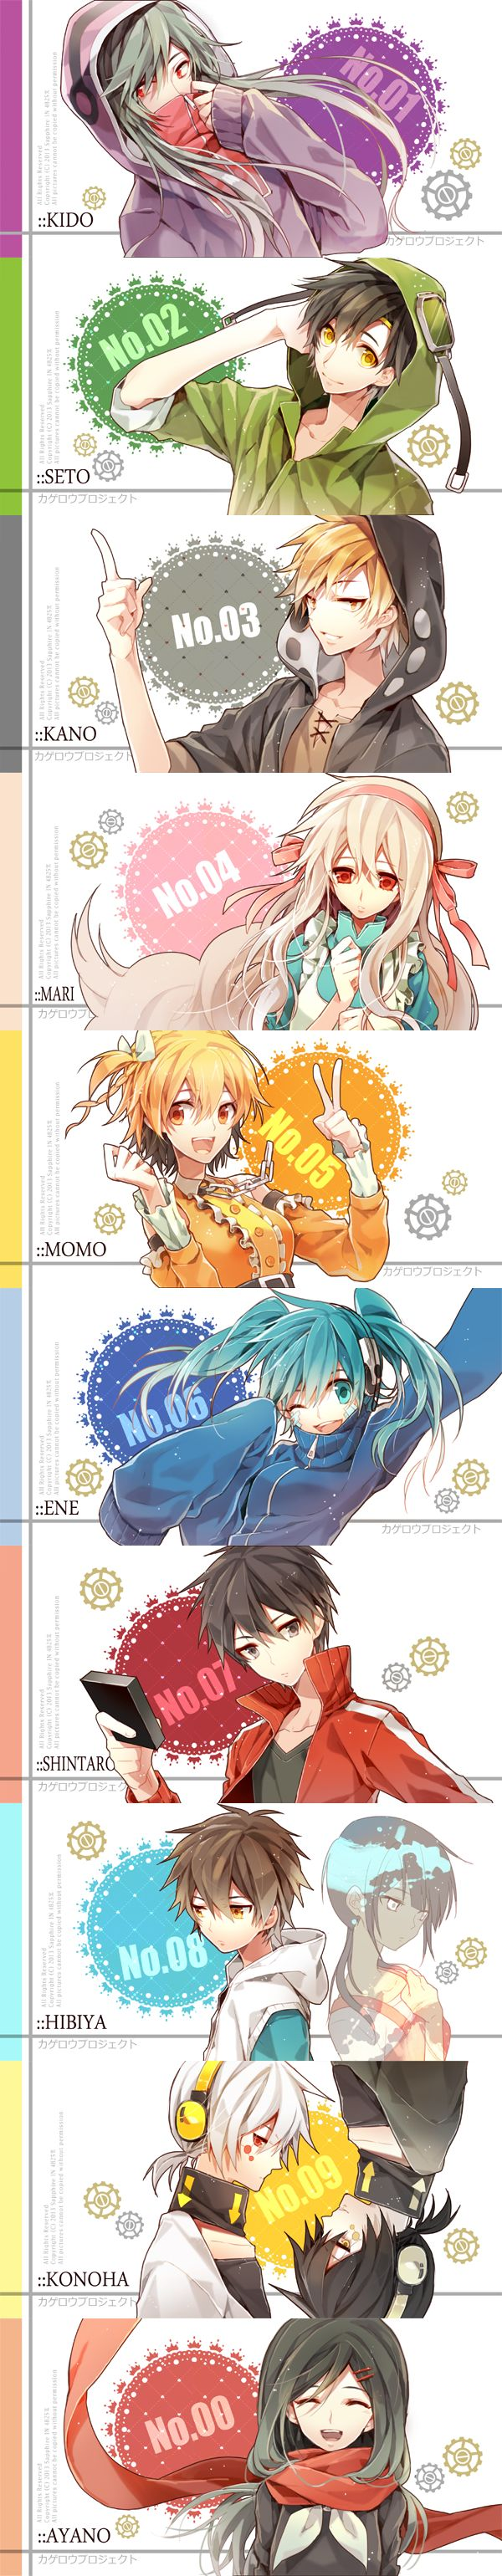 Kagerou Project - Mekaku City Actors.  I already know i posted this i just need it for refrence and closer at the top so i can see it better cuz cba to scroll down ~~ too busy to do it ~~ teehee (^ν^) (^з^)-☆